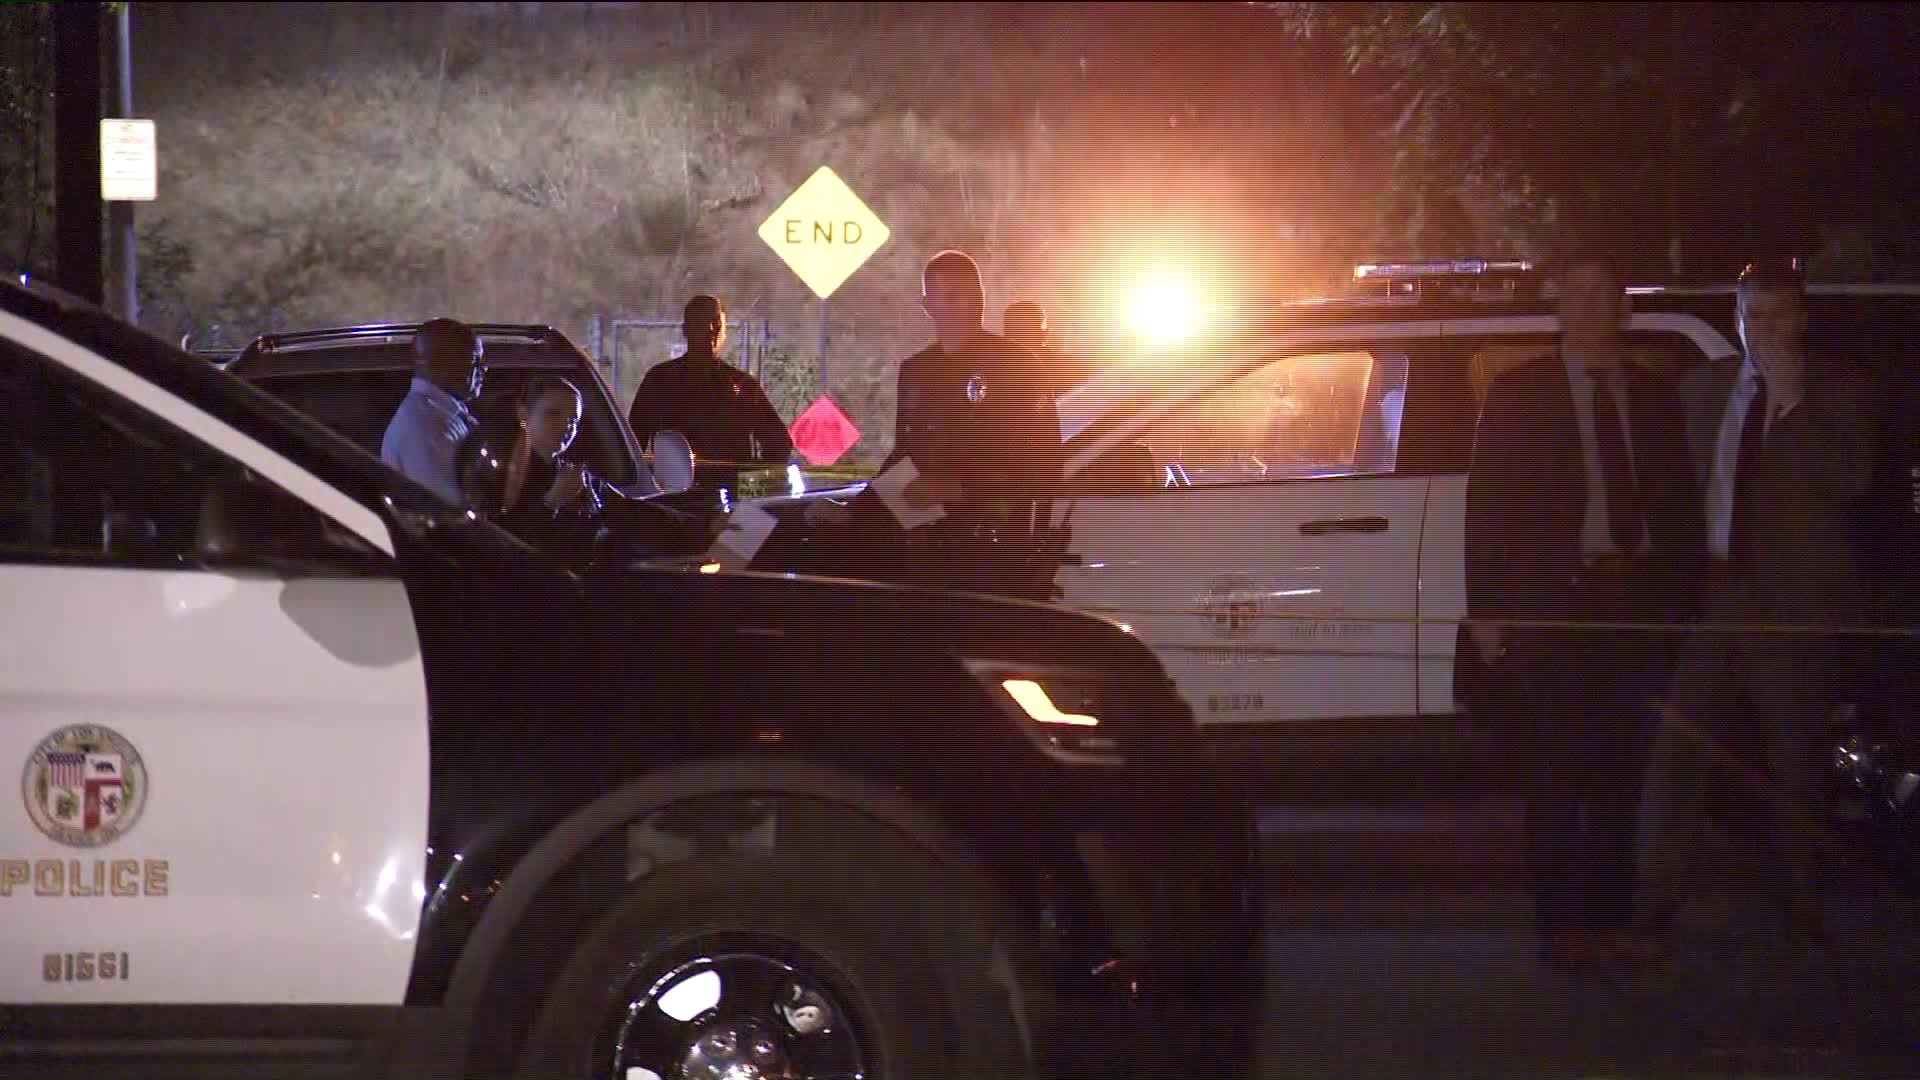 Police investigate a shooting that left a man dead at Orion Avenue and Chase Street in the North Hills area of Los Angeles on Oct. 18, 2019. (Credit: KTLA)